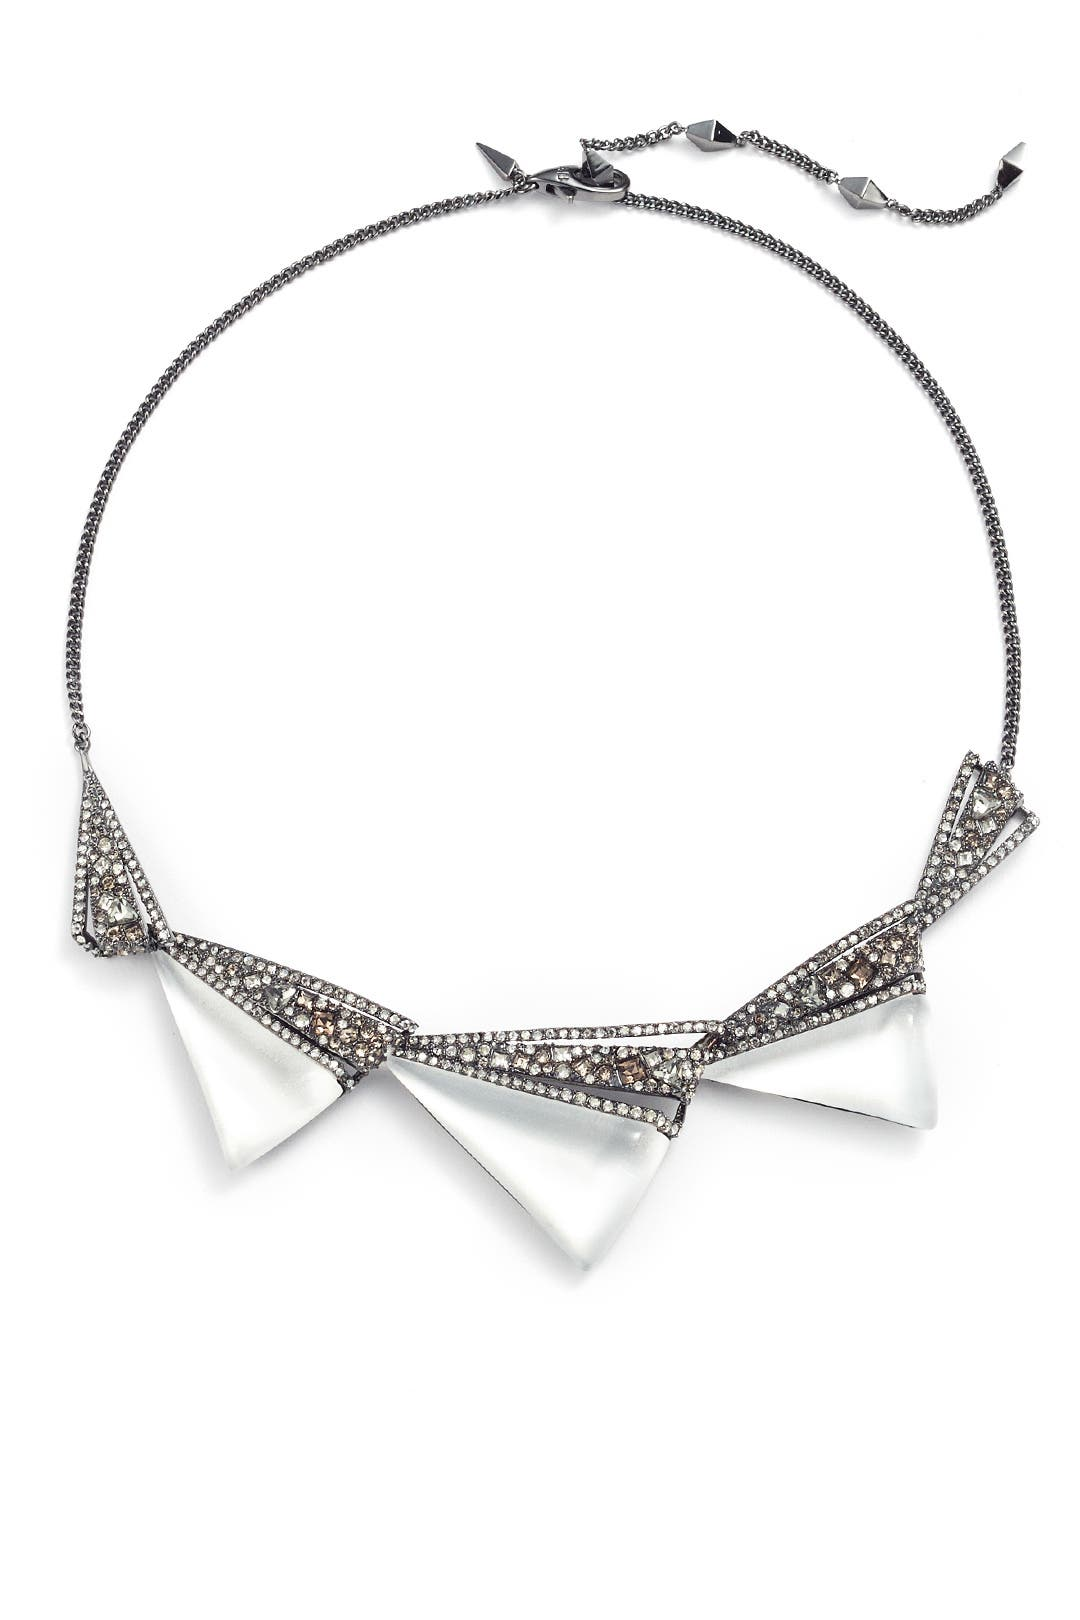 Alexis Bittar Crystal Origami Bib Necklace